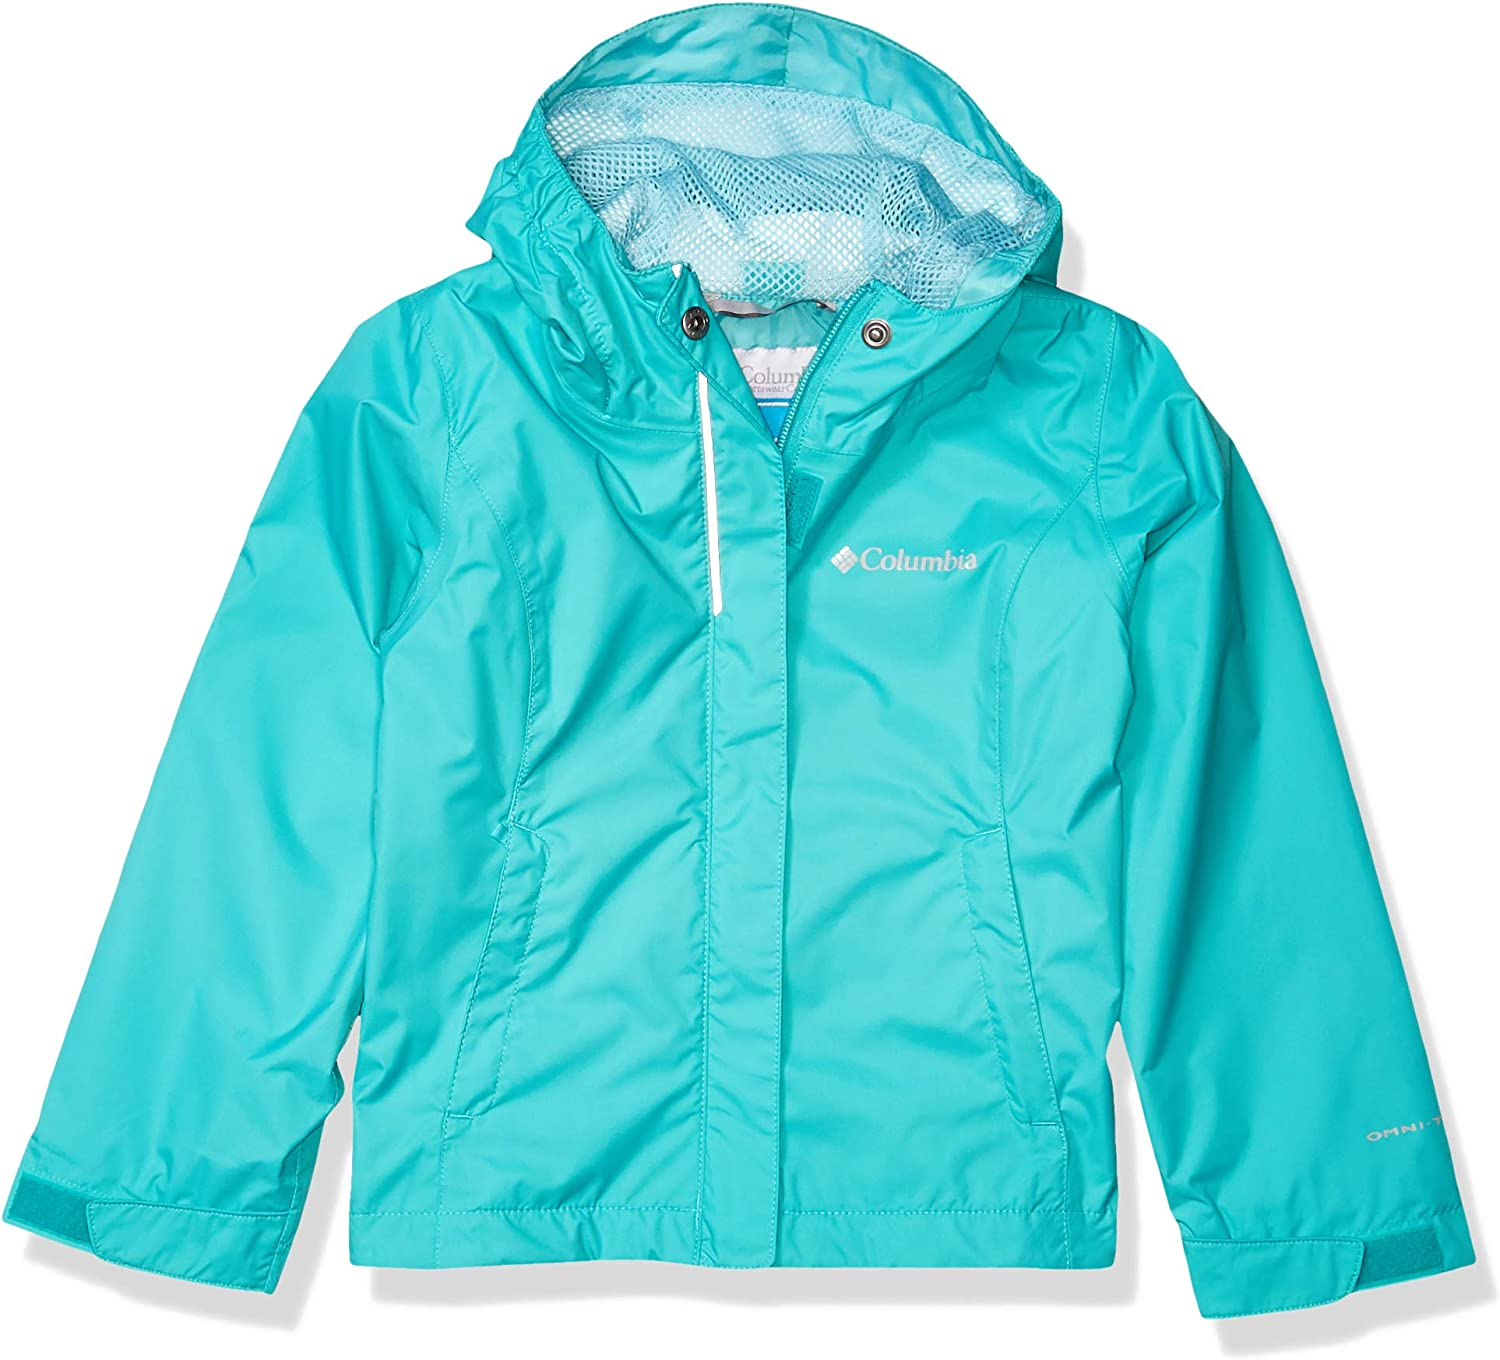 Columbia Girls Jacket High Cash special price quality Arcadia